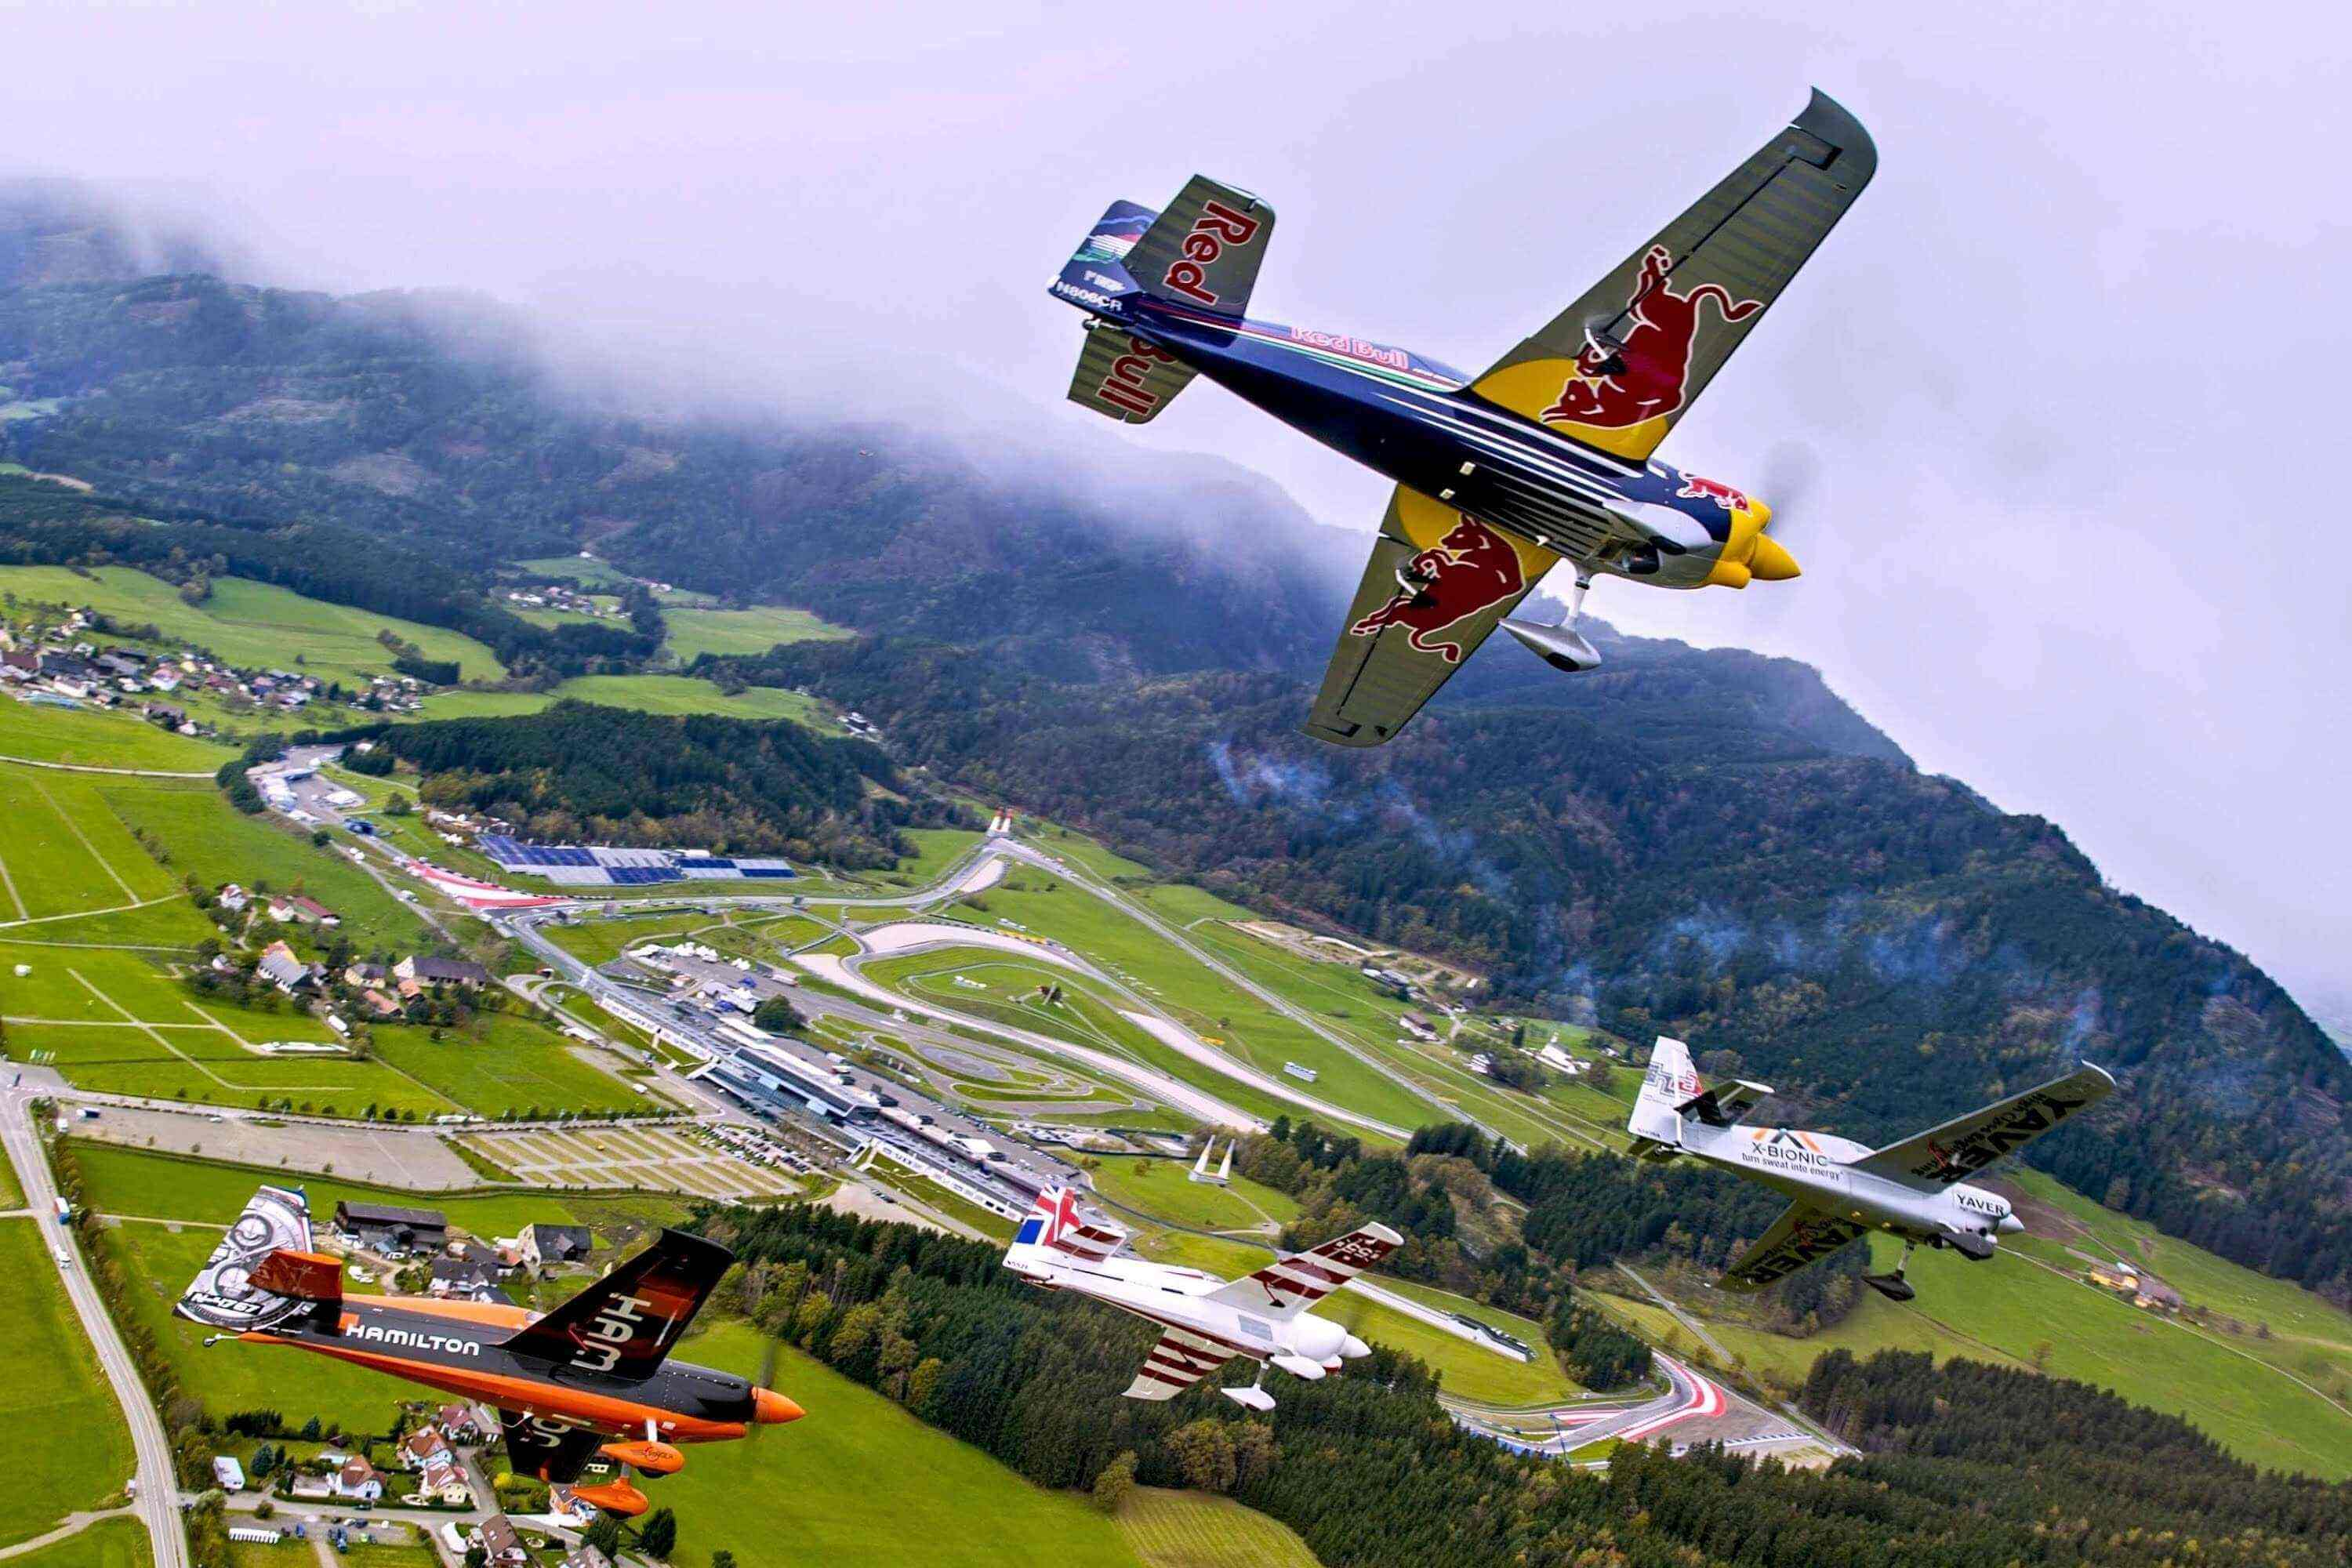 The Red Bull Air Race returns to its Austrian